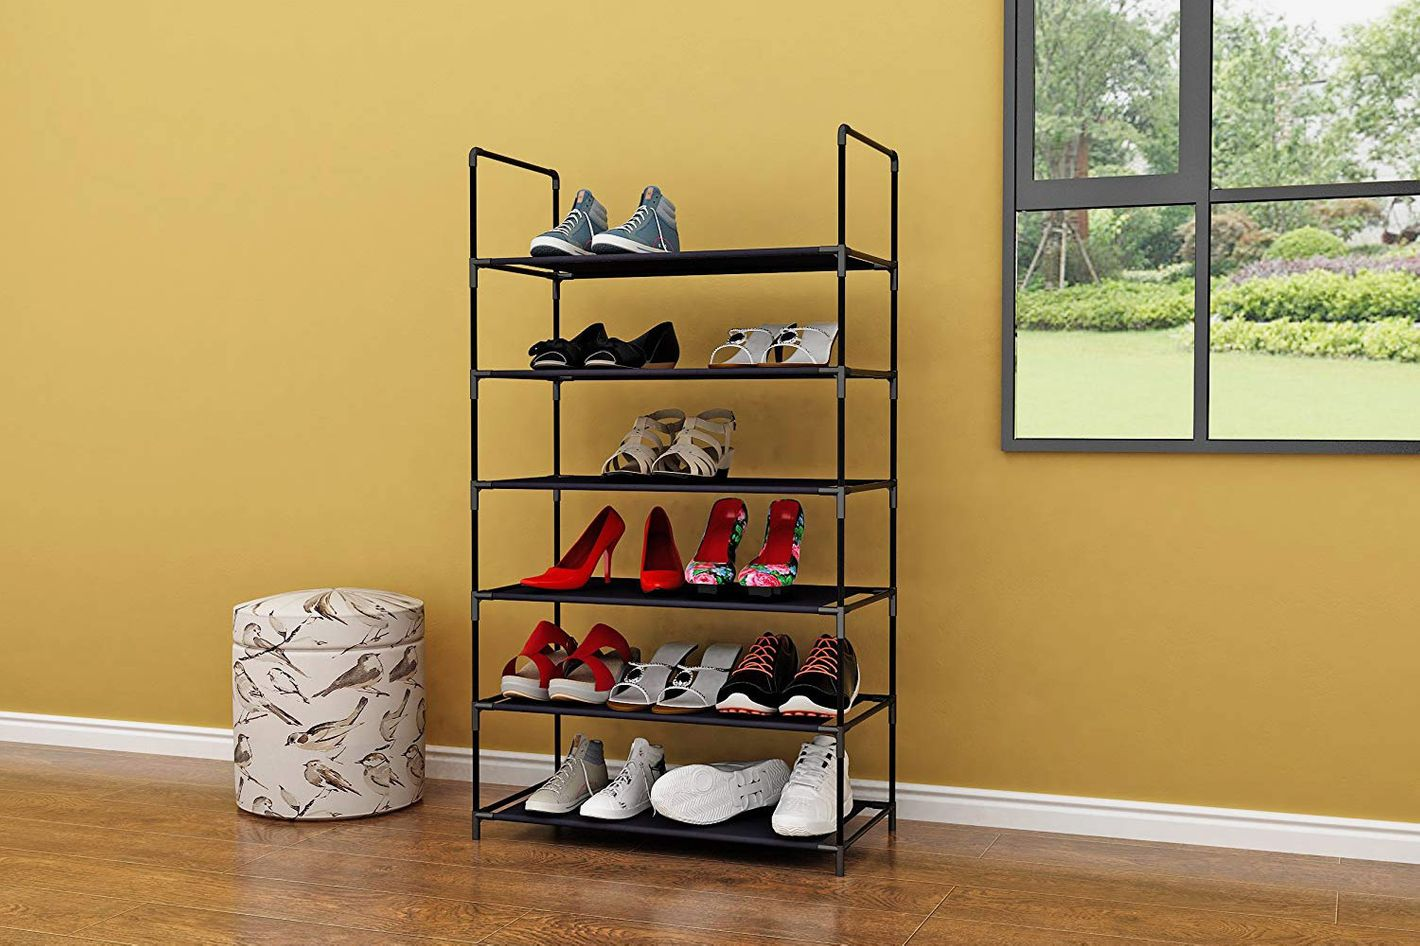 Homebi 6-Tier Shoe Rack